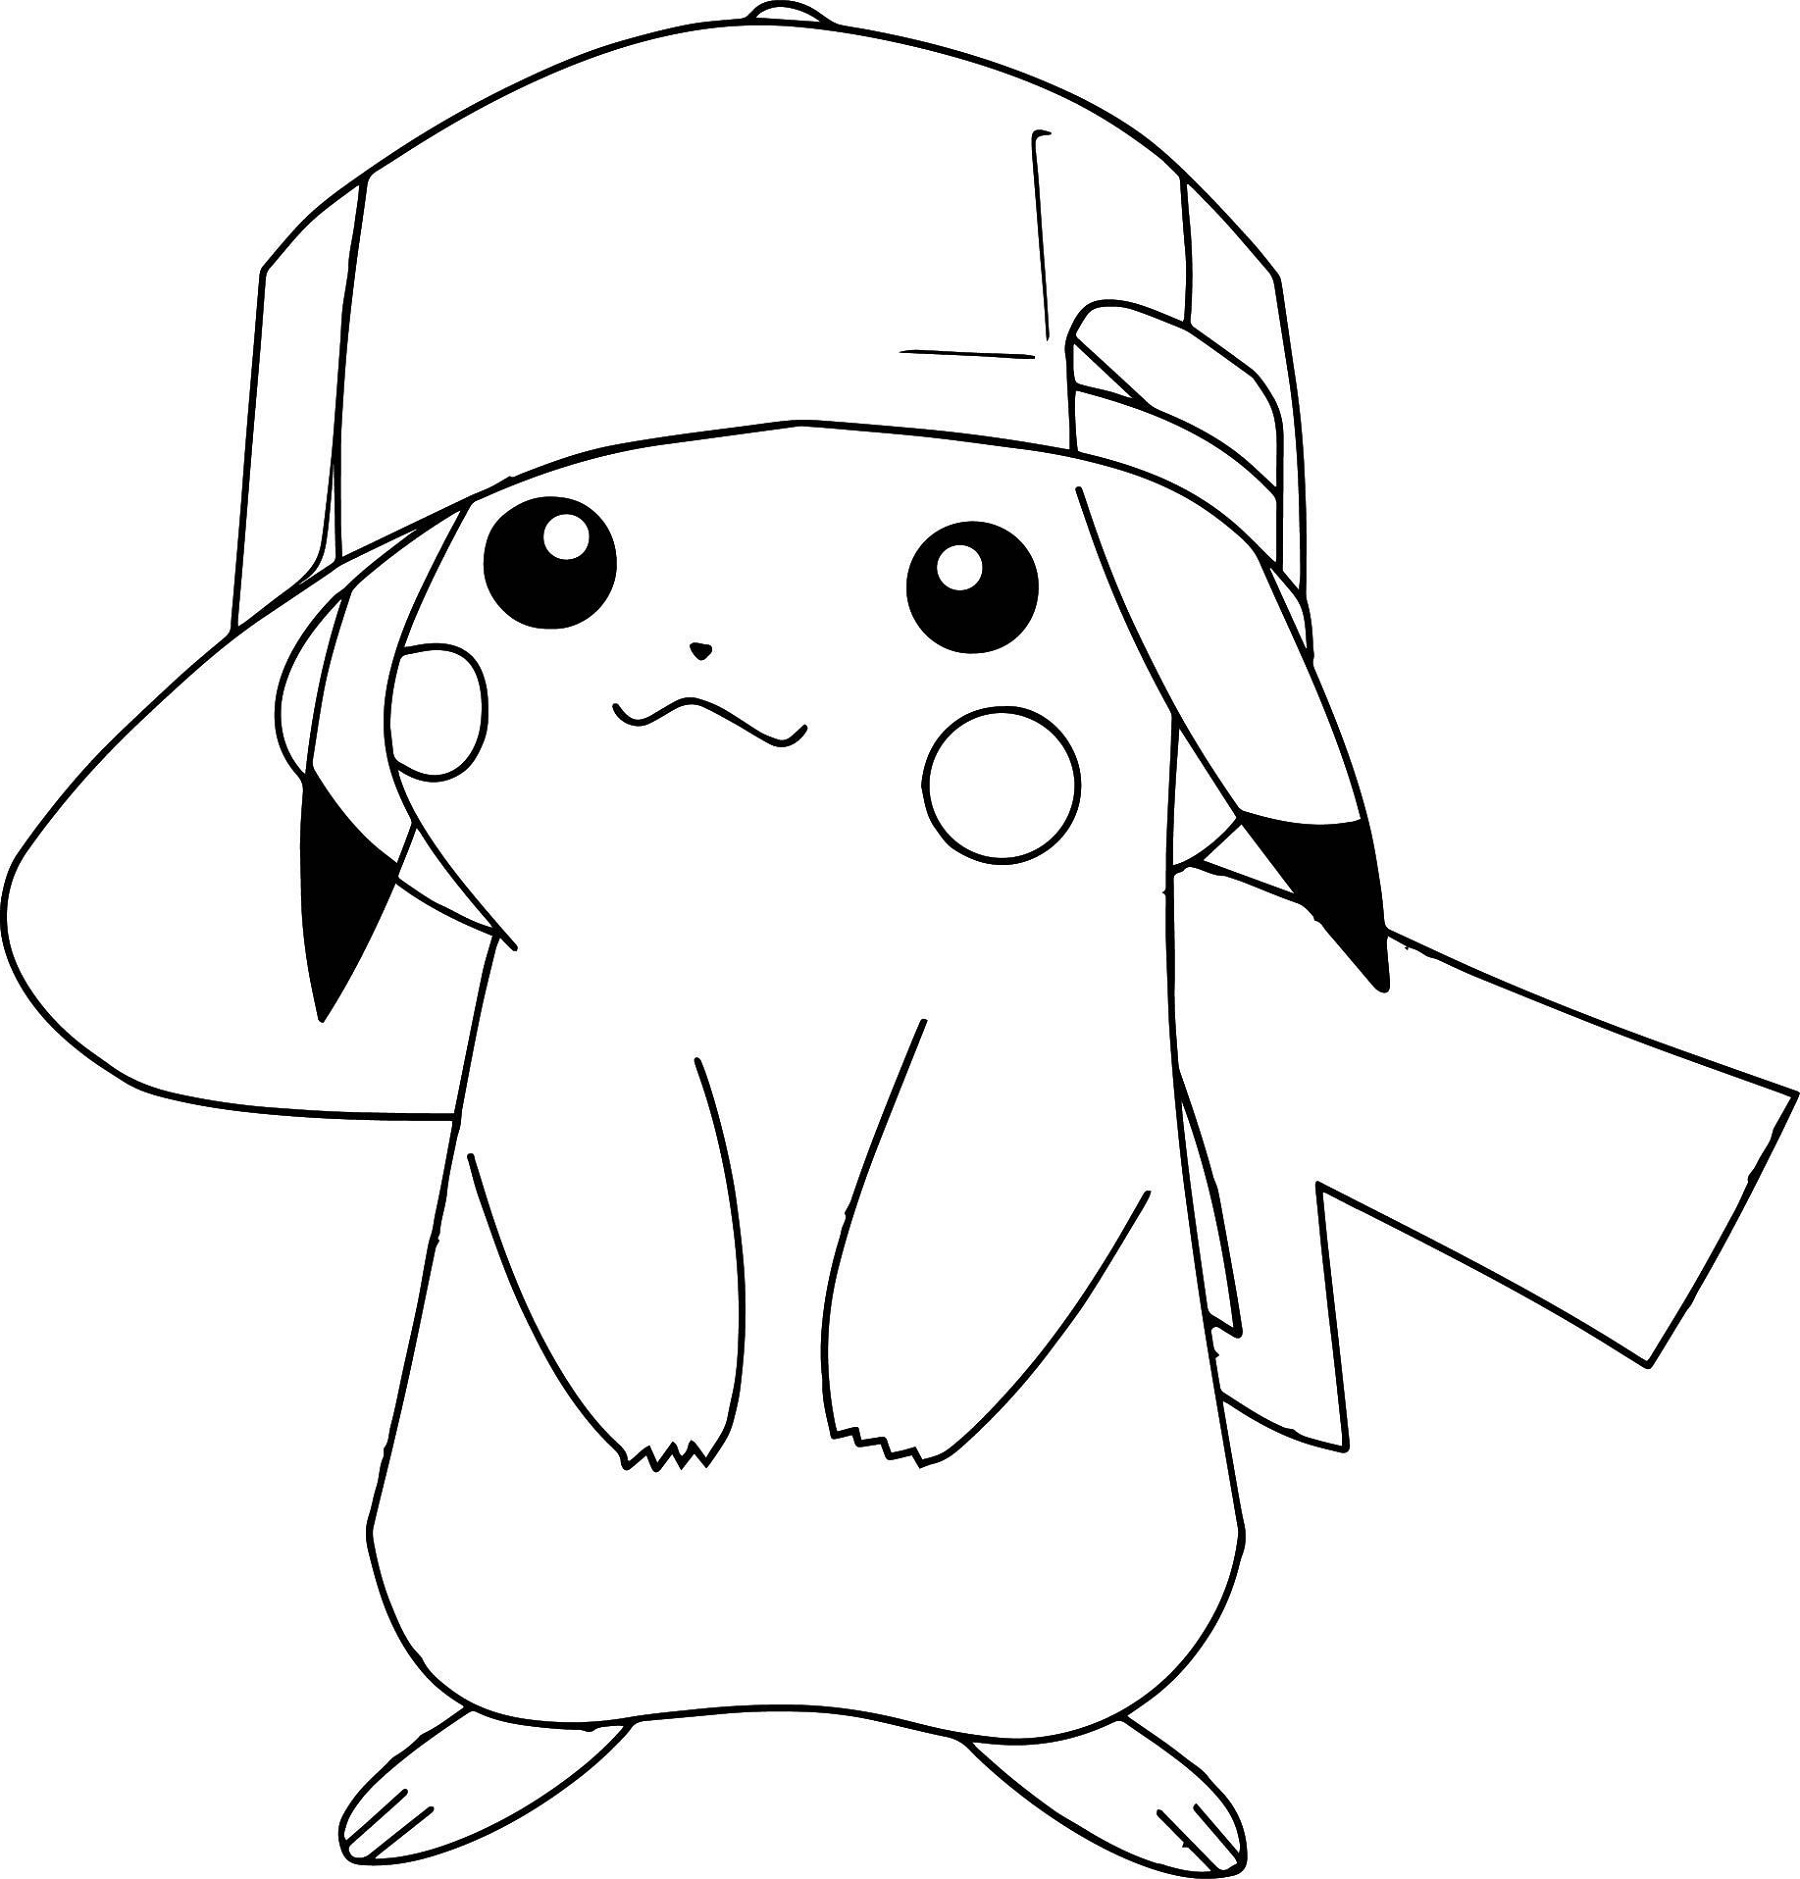 cute adorable pikachu coloring pages cute pikachu coloring pages at getcoloringscom free cute pikachu coloring adorable pages